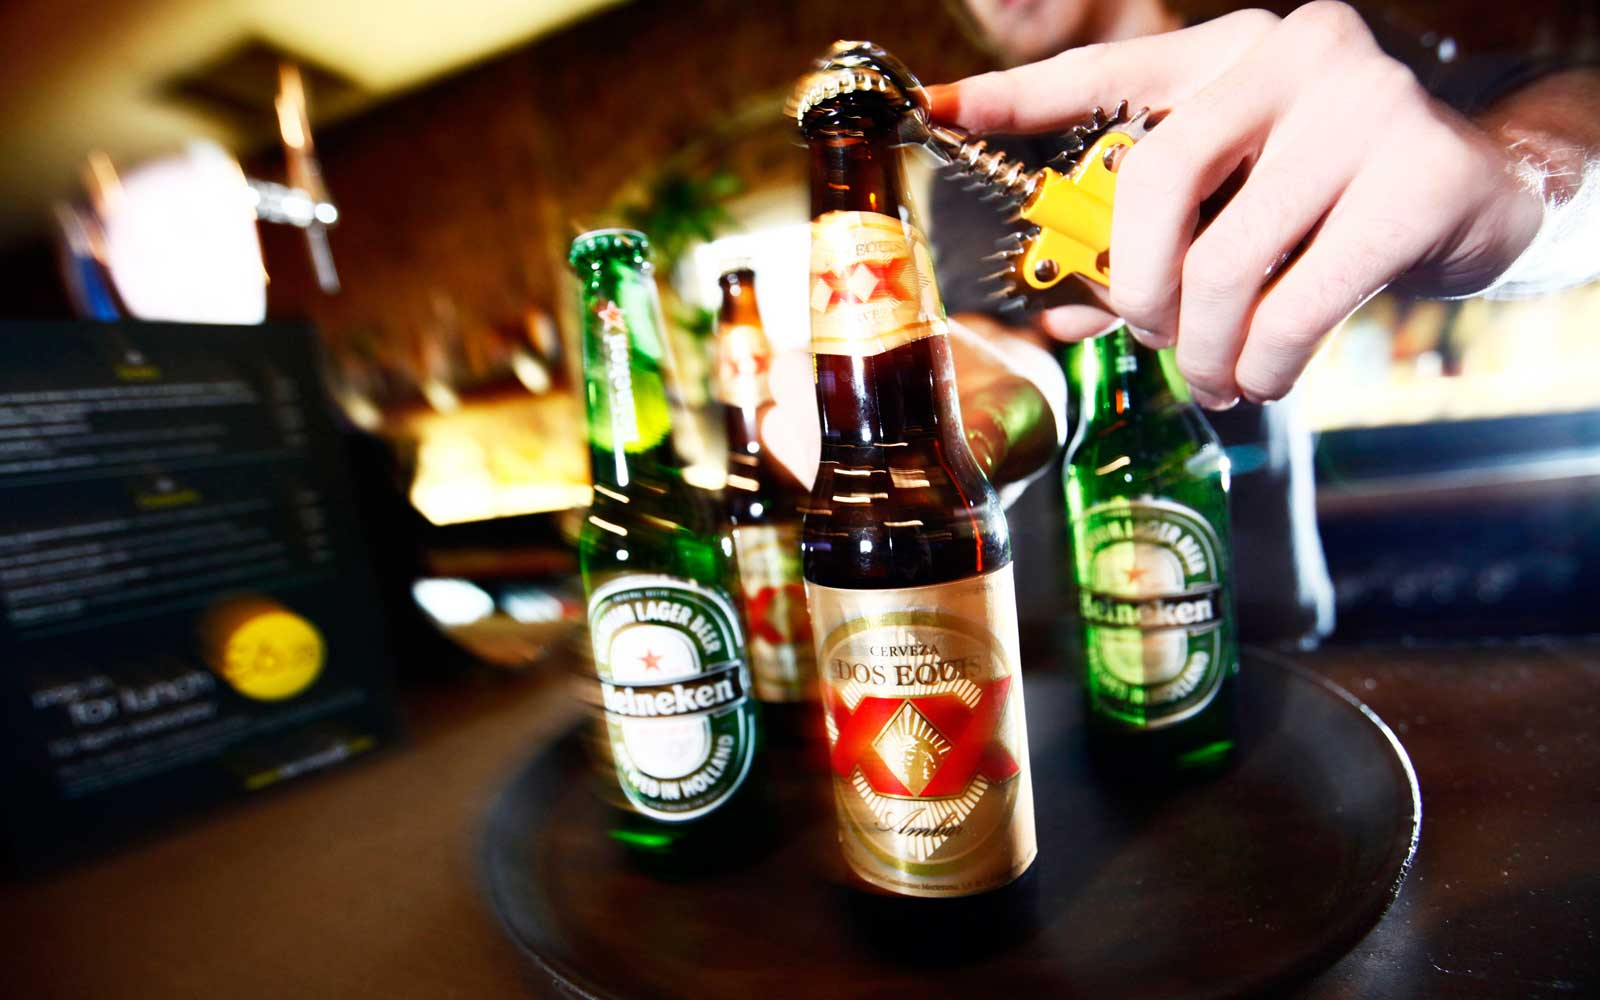 Heineken Agrees to Buy FemsaÕs Beer Unit